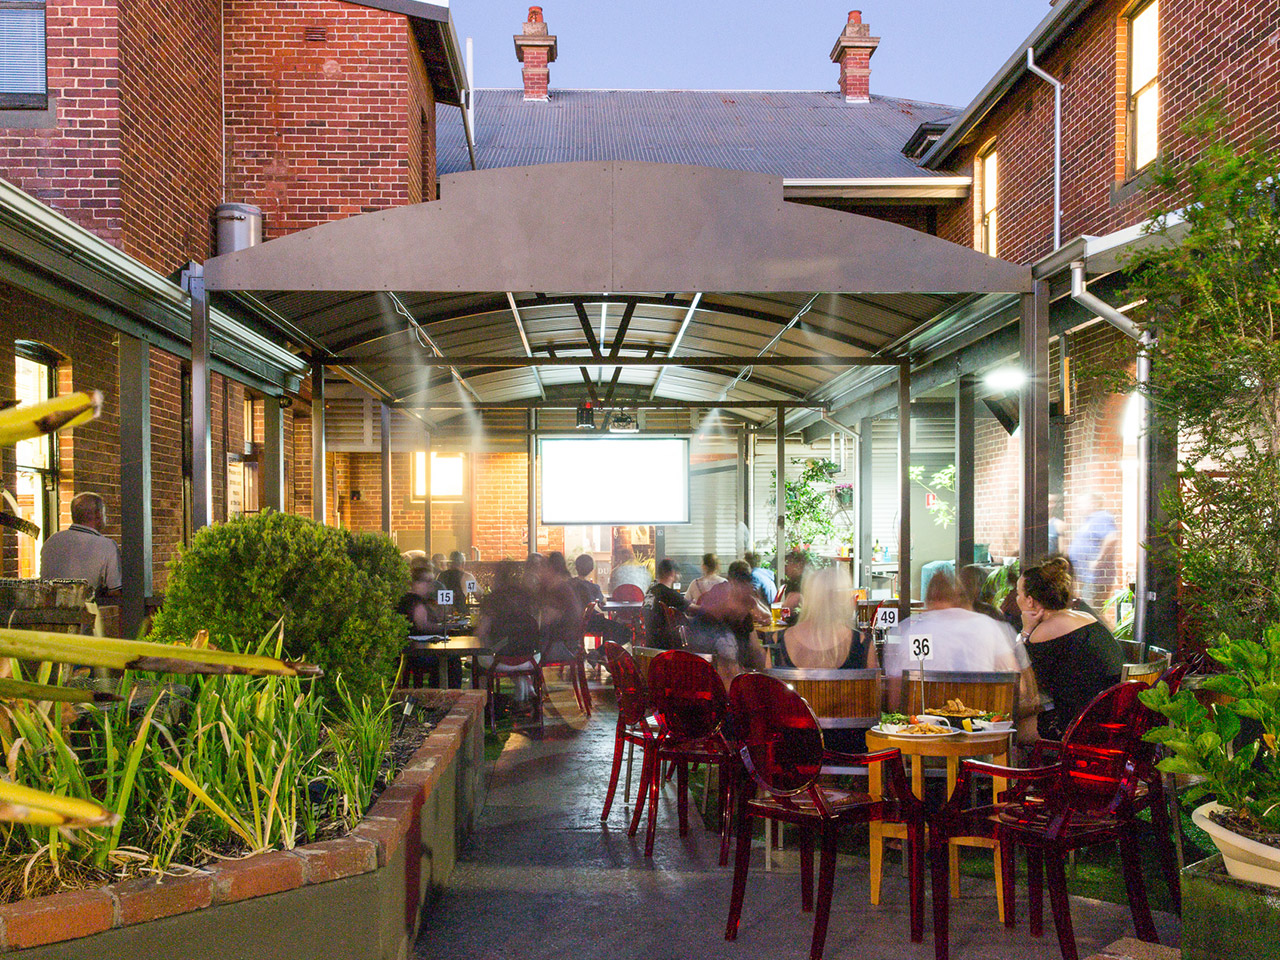 Garden Bar with People Sitting in Banquet Style with TV Screen in Dusk